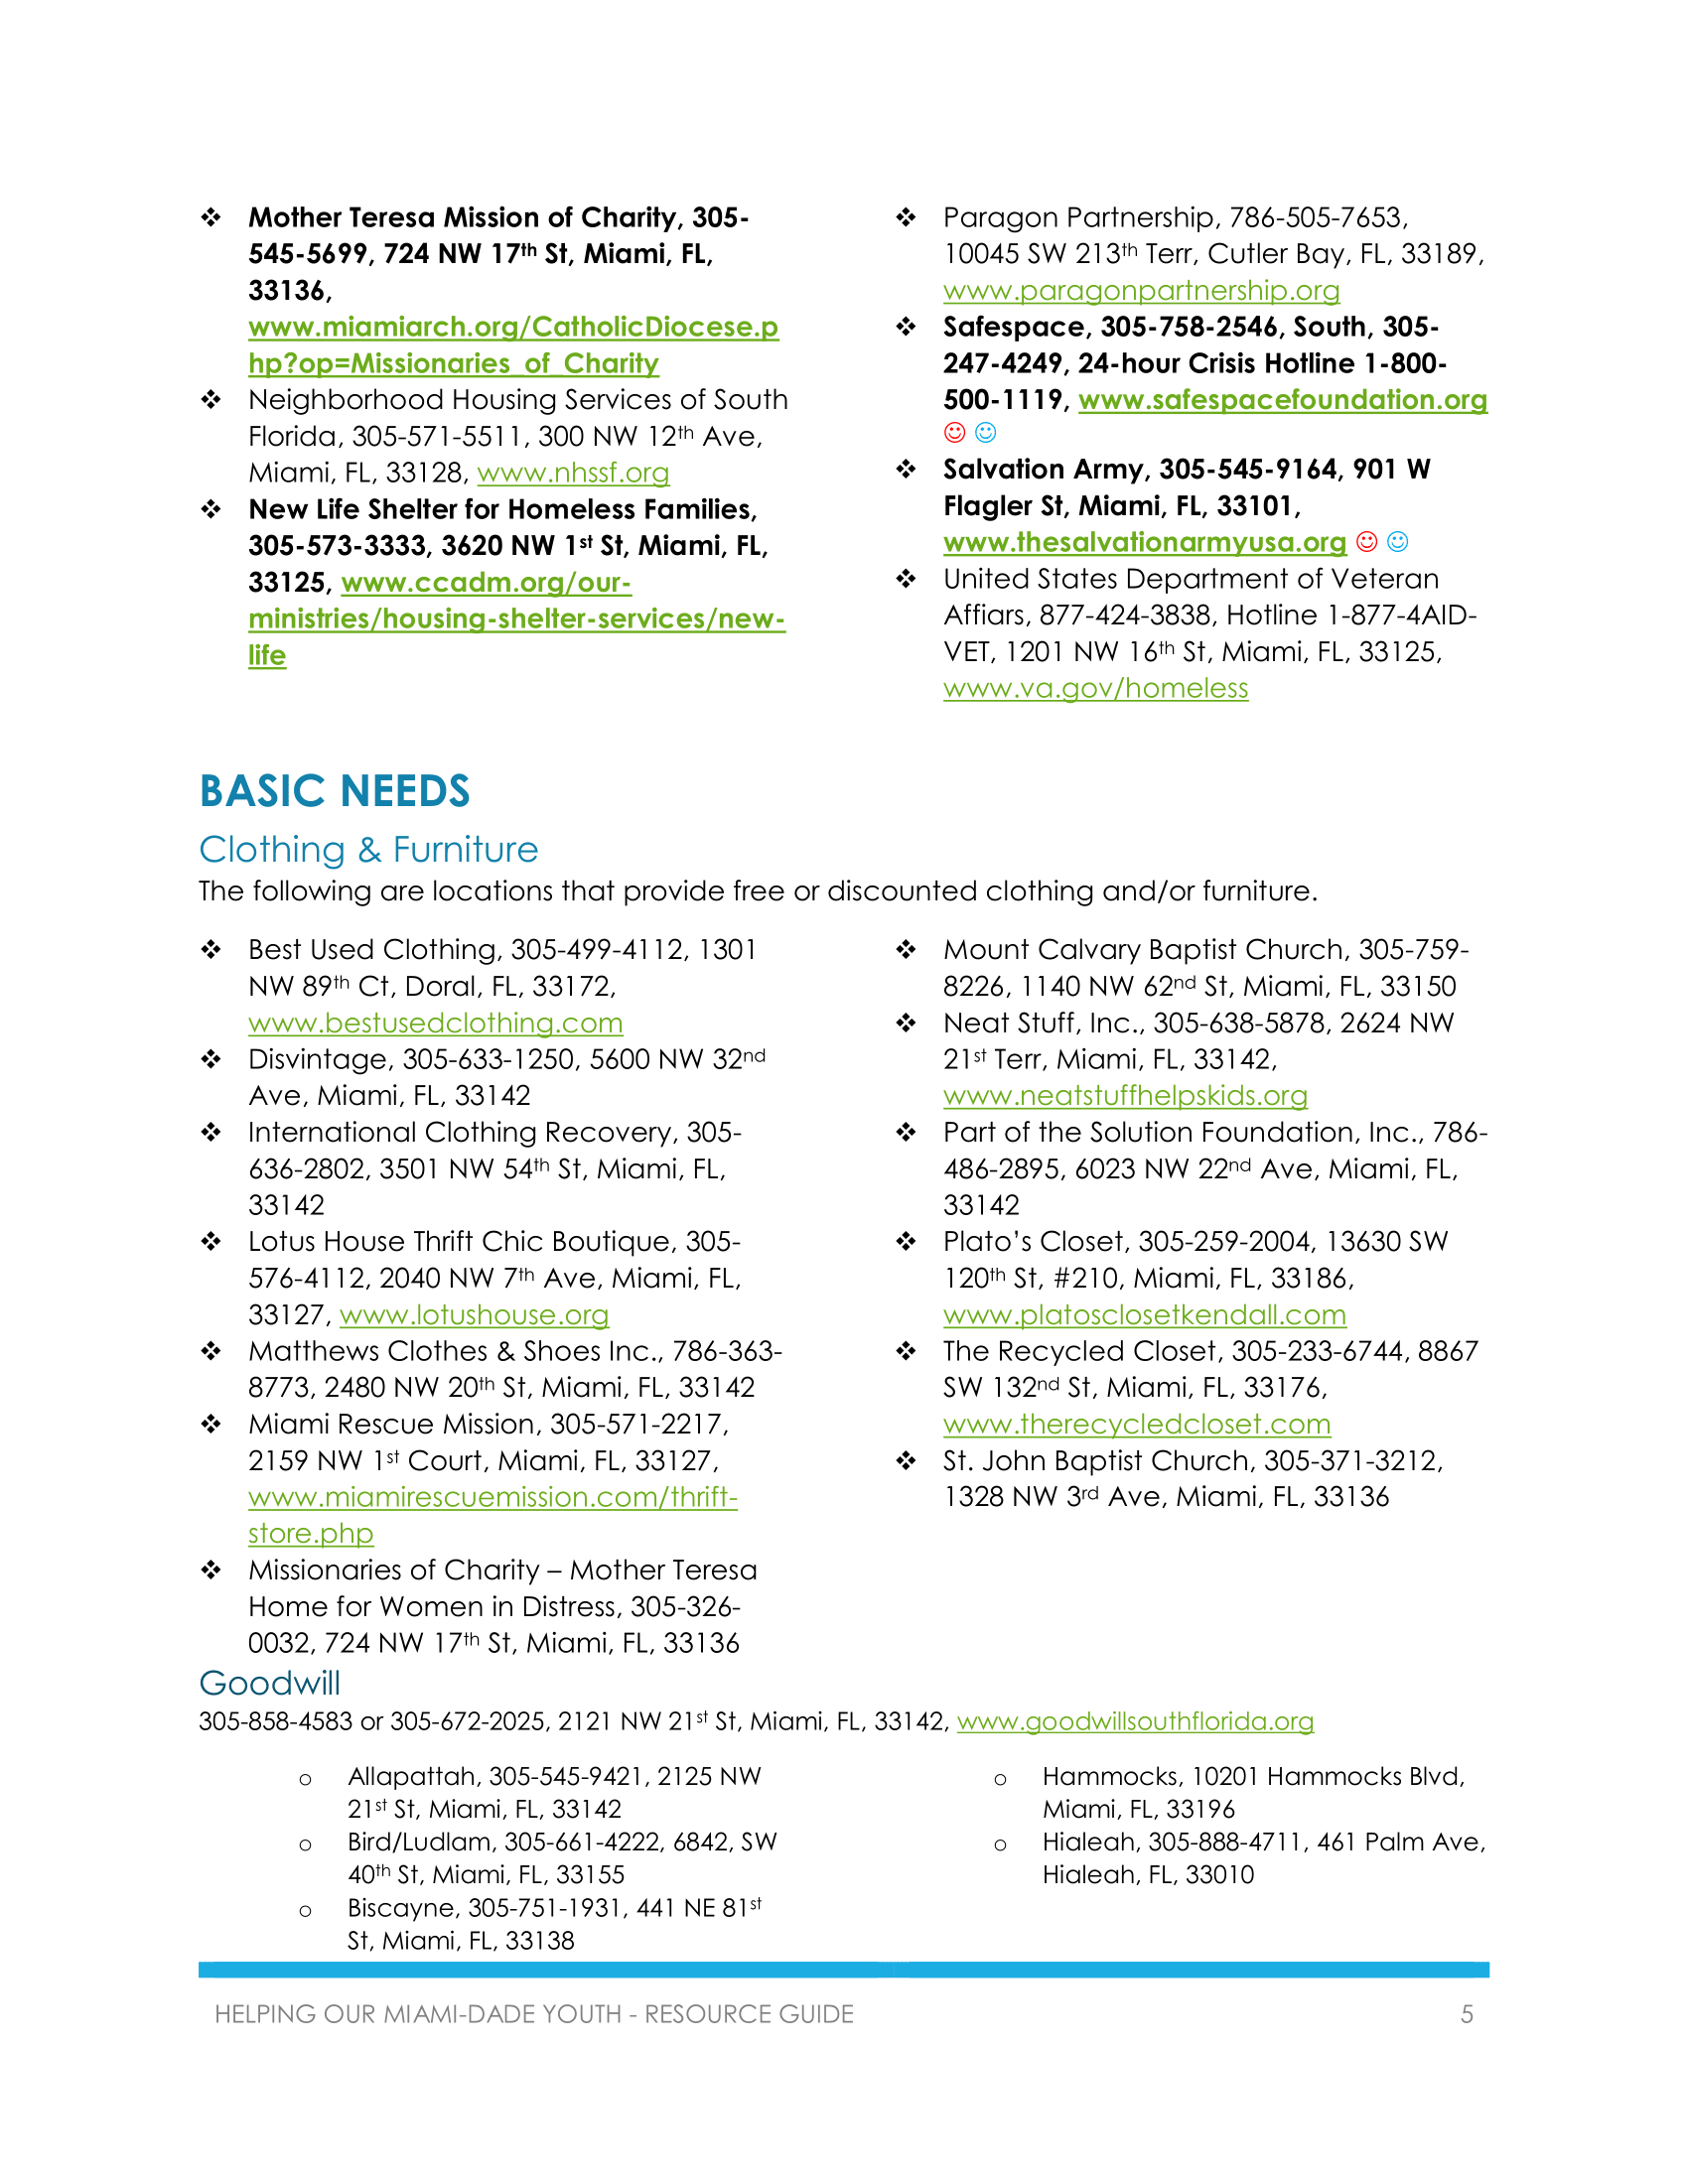 Youth Resource Guide - May 2018-10.png